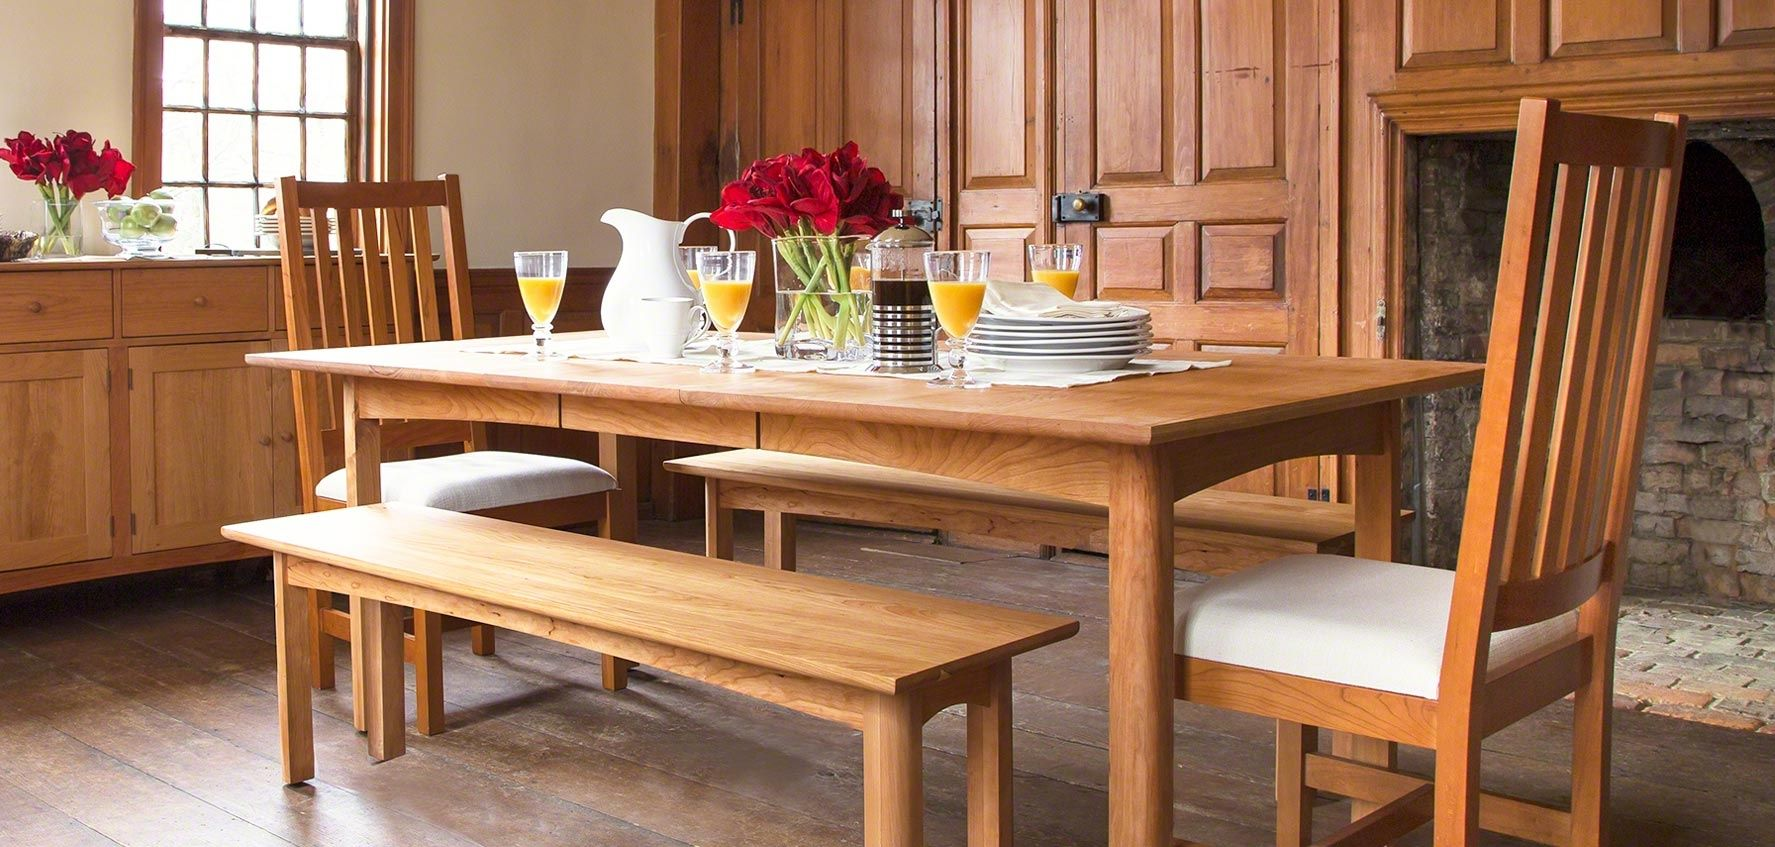 Shaker Style Dining Room Table Dining Room Chairs Modern Dining Table Solid Wood Dining Table